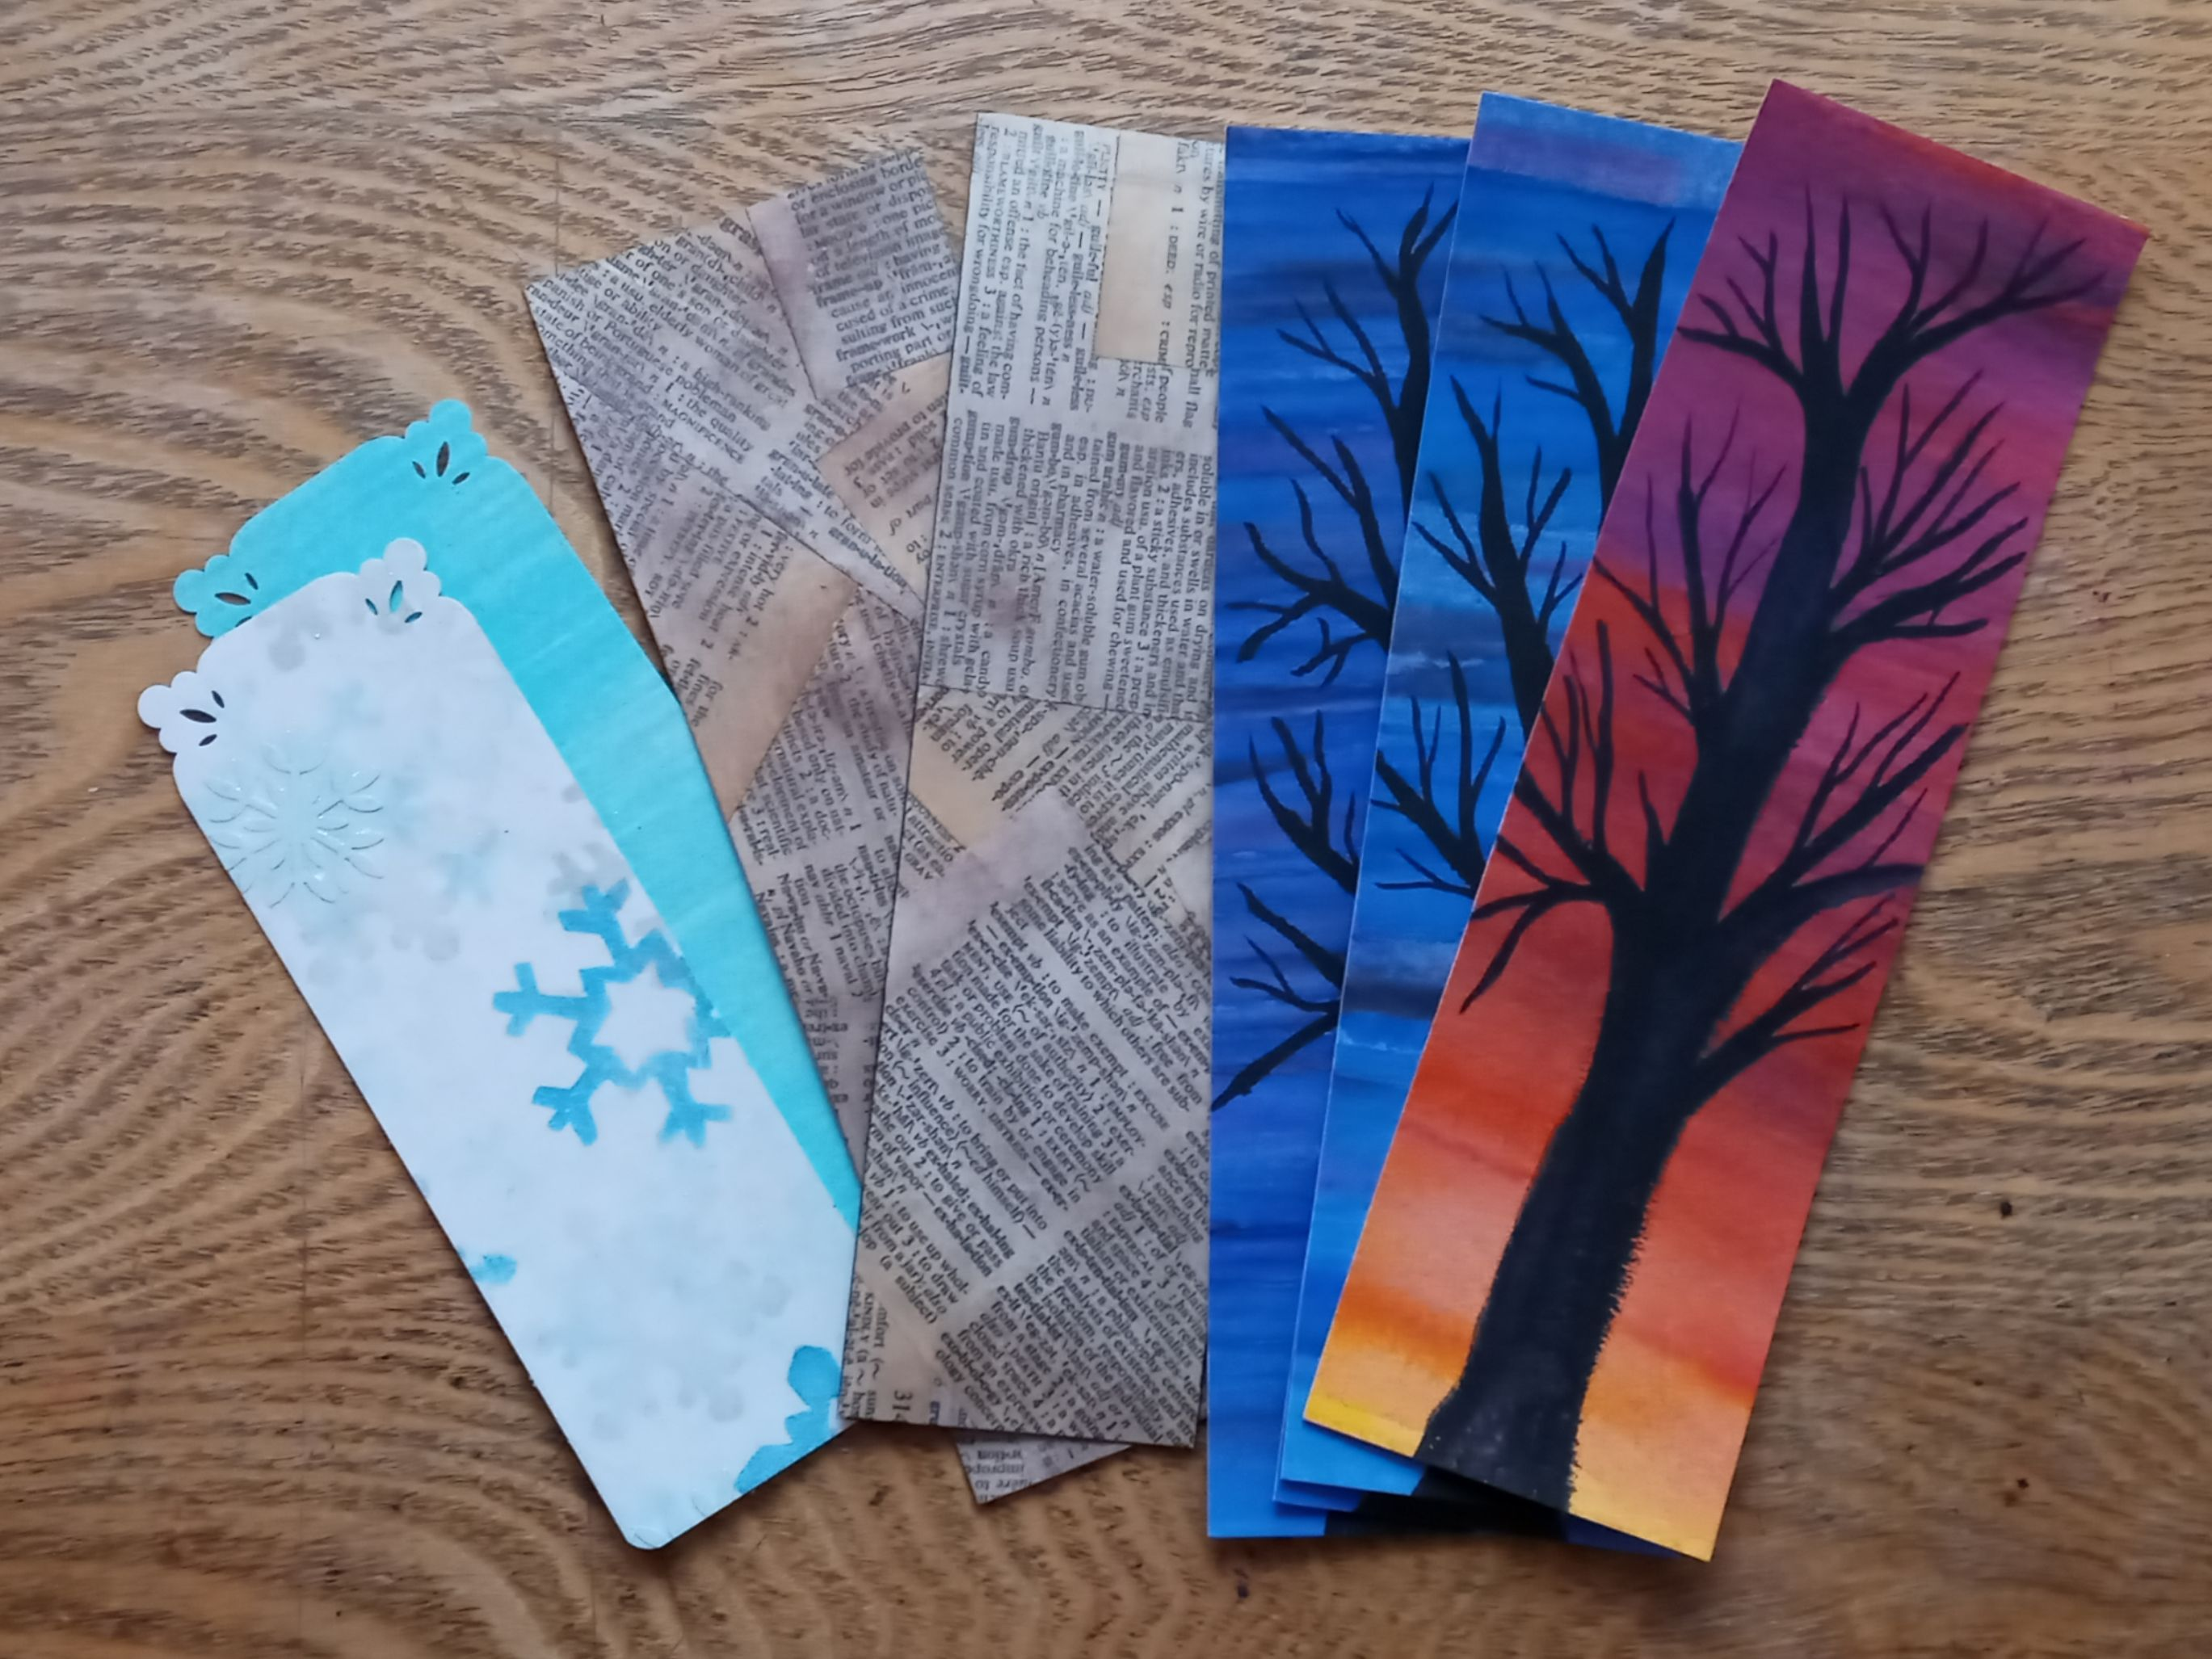 sparkly winter, dictionary and spooky tree bookmarks on plain wood background